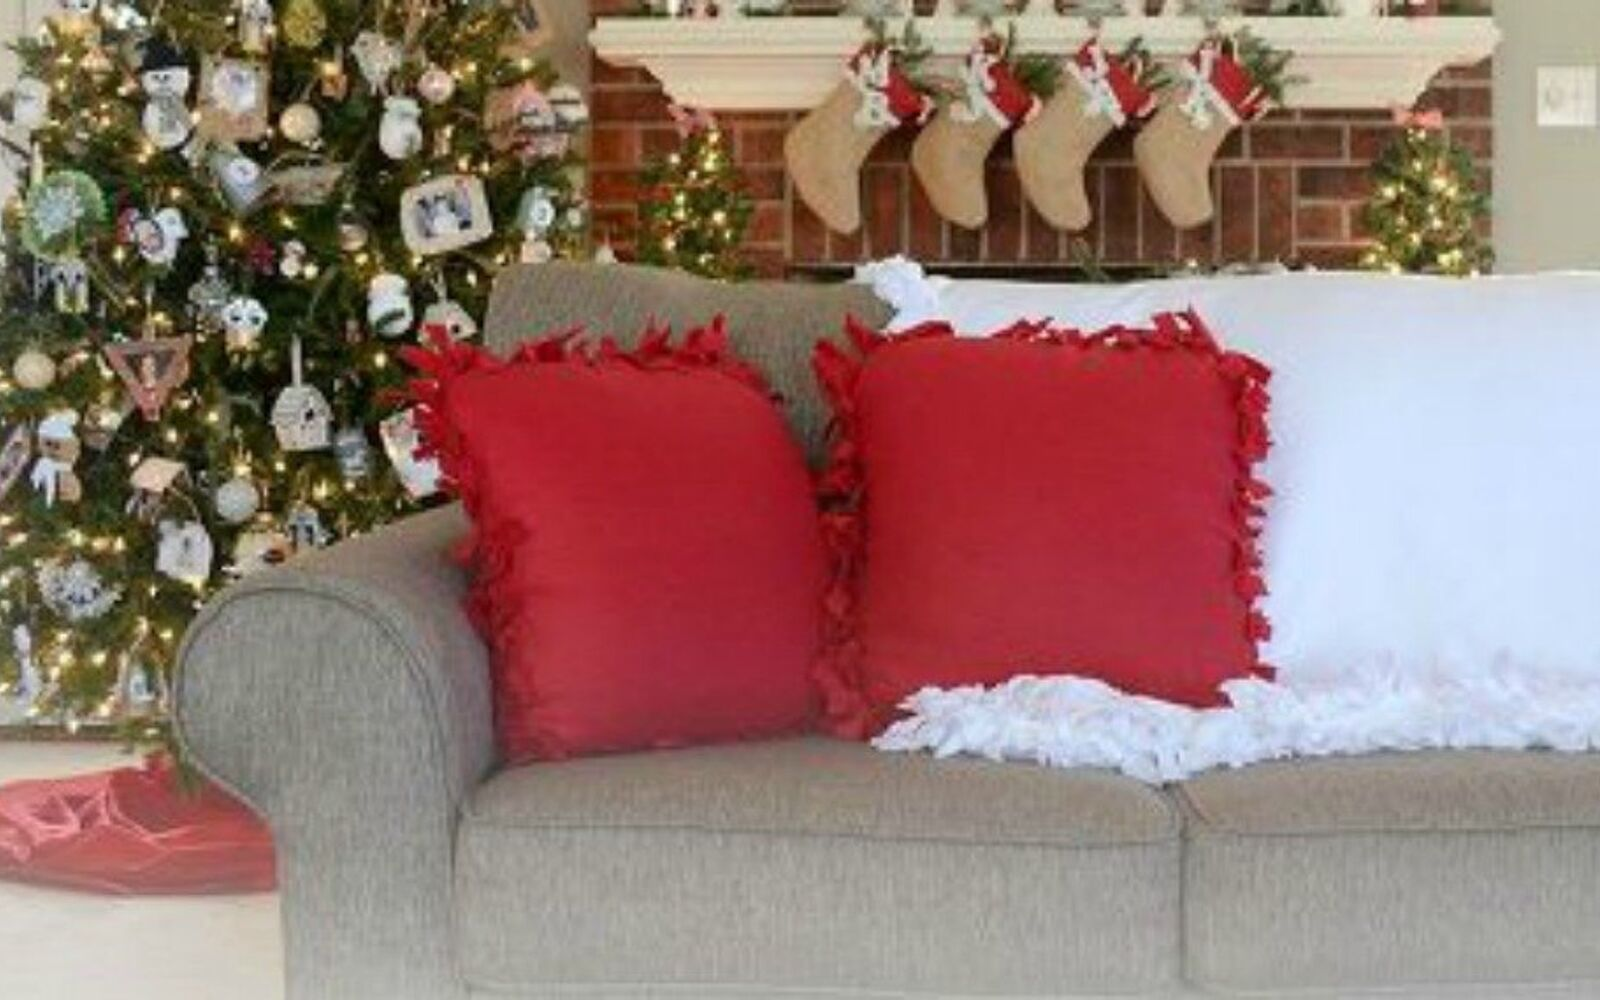 s 18 diy christmas gift ideas you ll want to keep for your home, home decor, This no sew fleece pillow